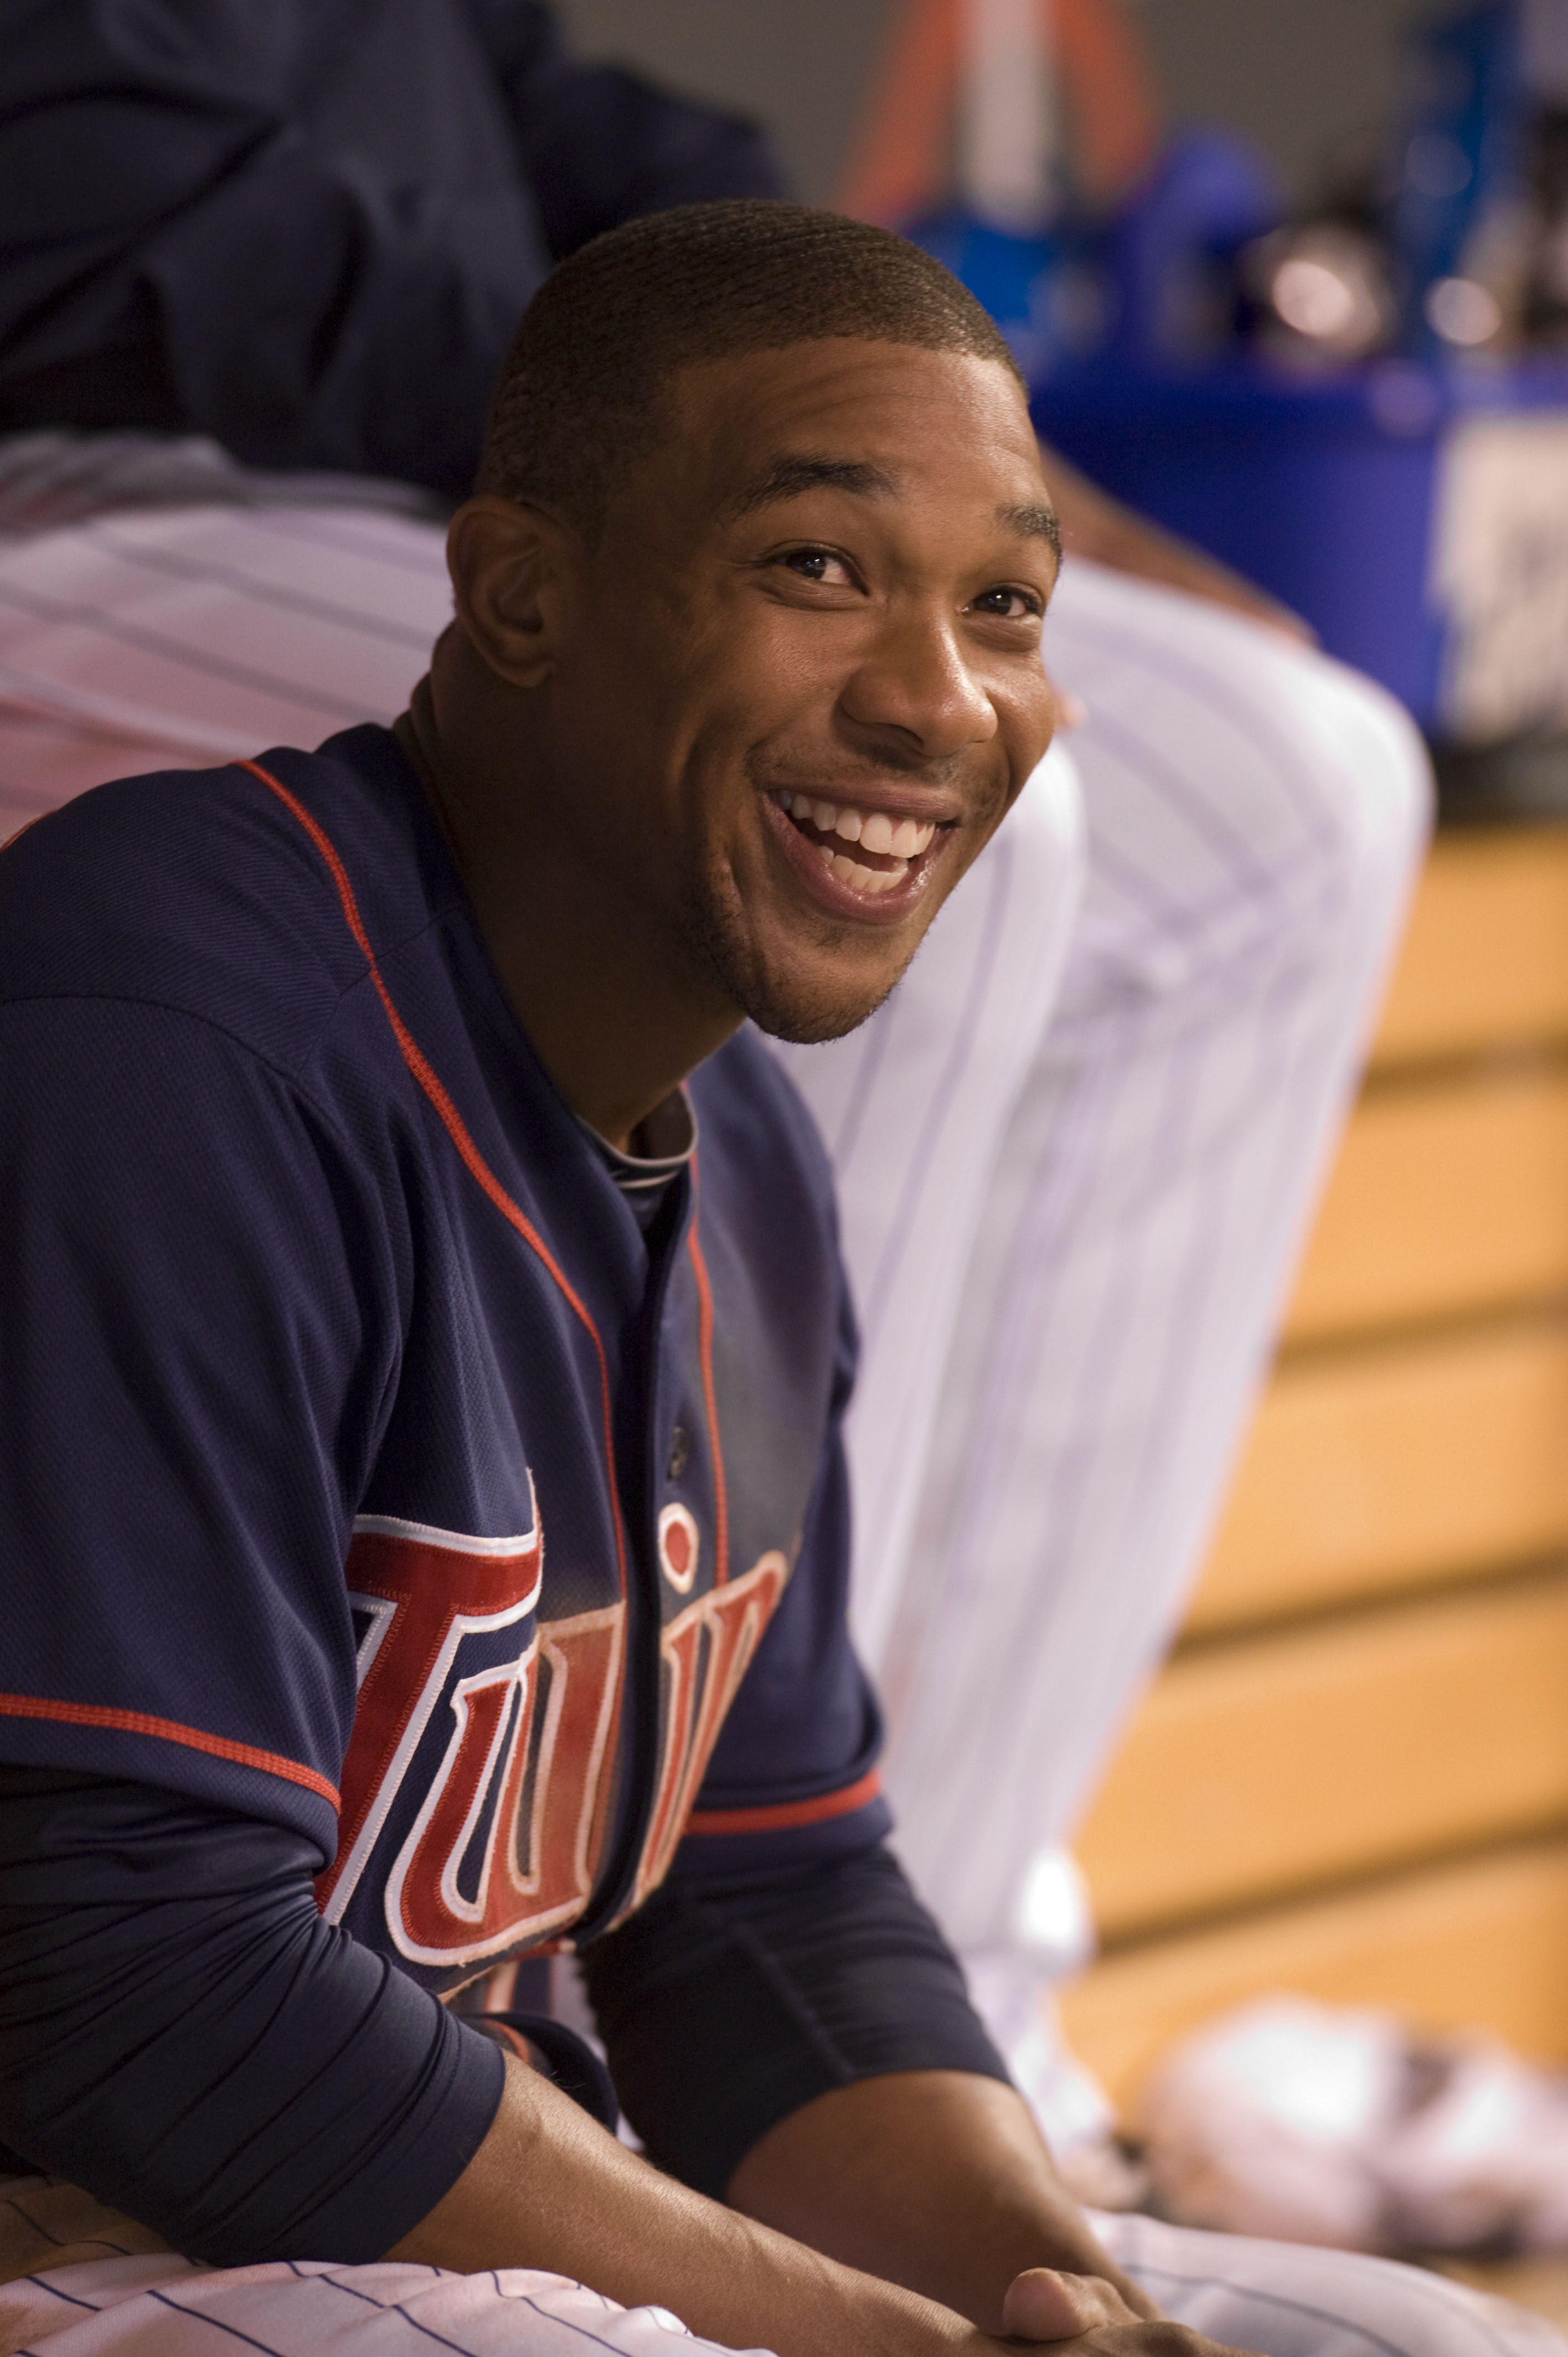 Ben Revere (Getty Images)